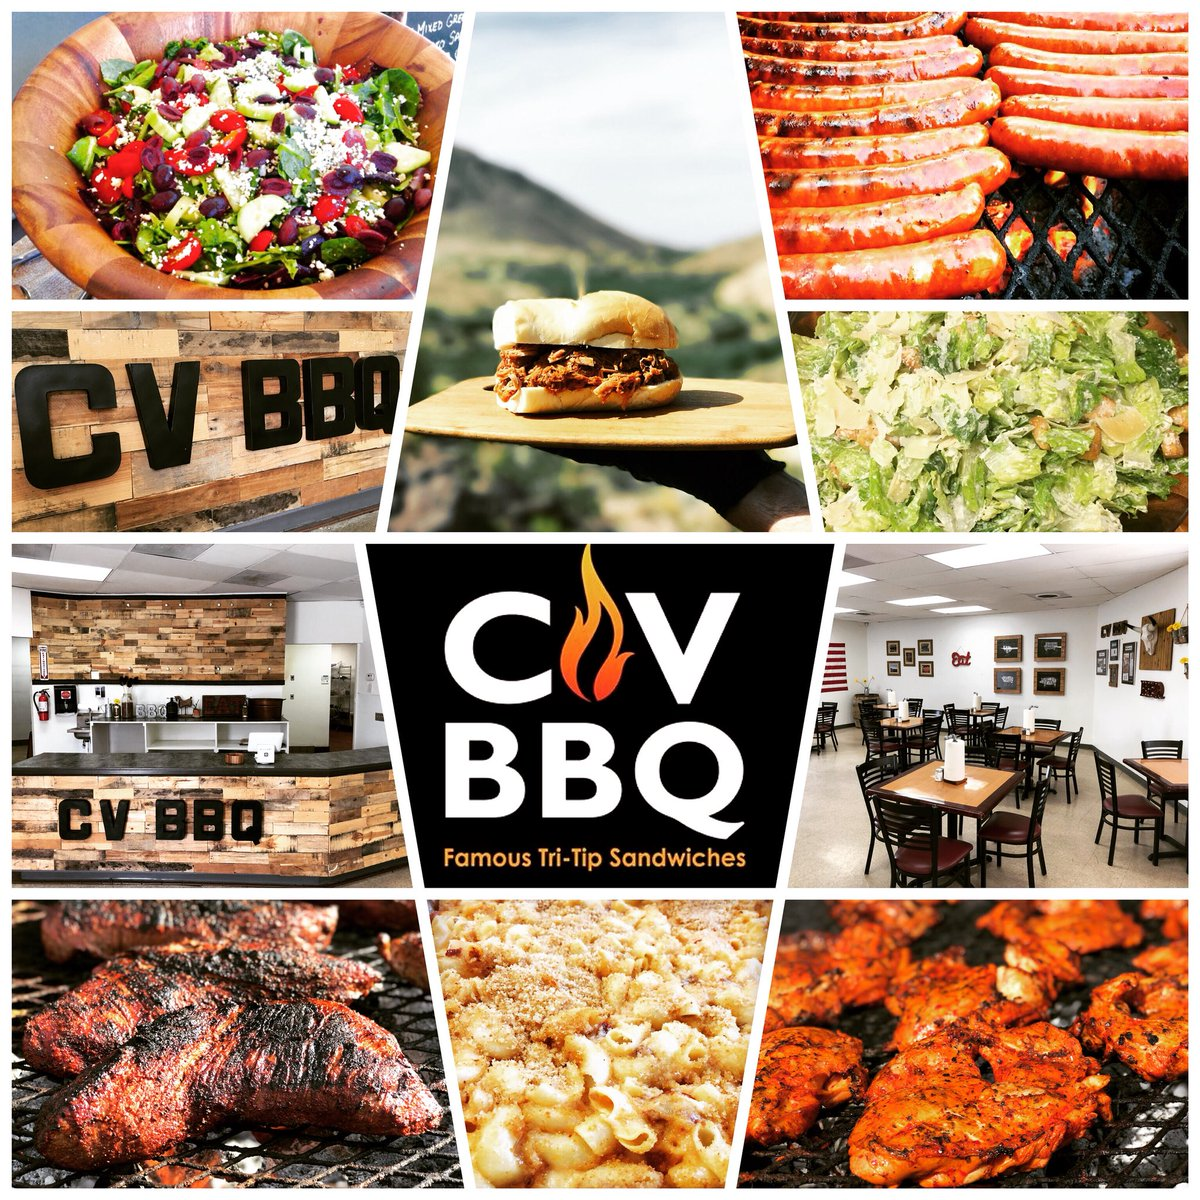 cv bbq on twitter we are 1 week away from our grand opening on